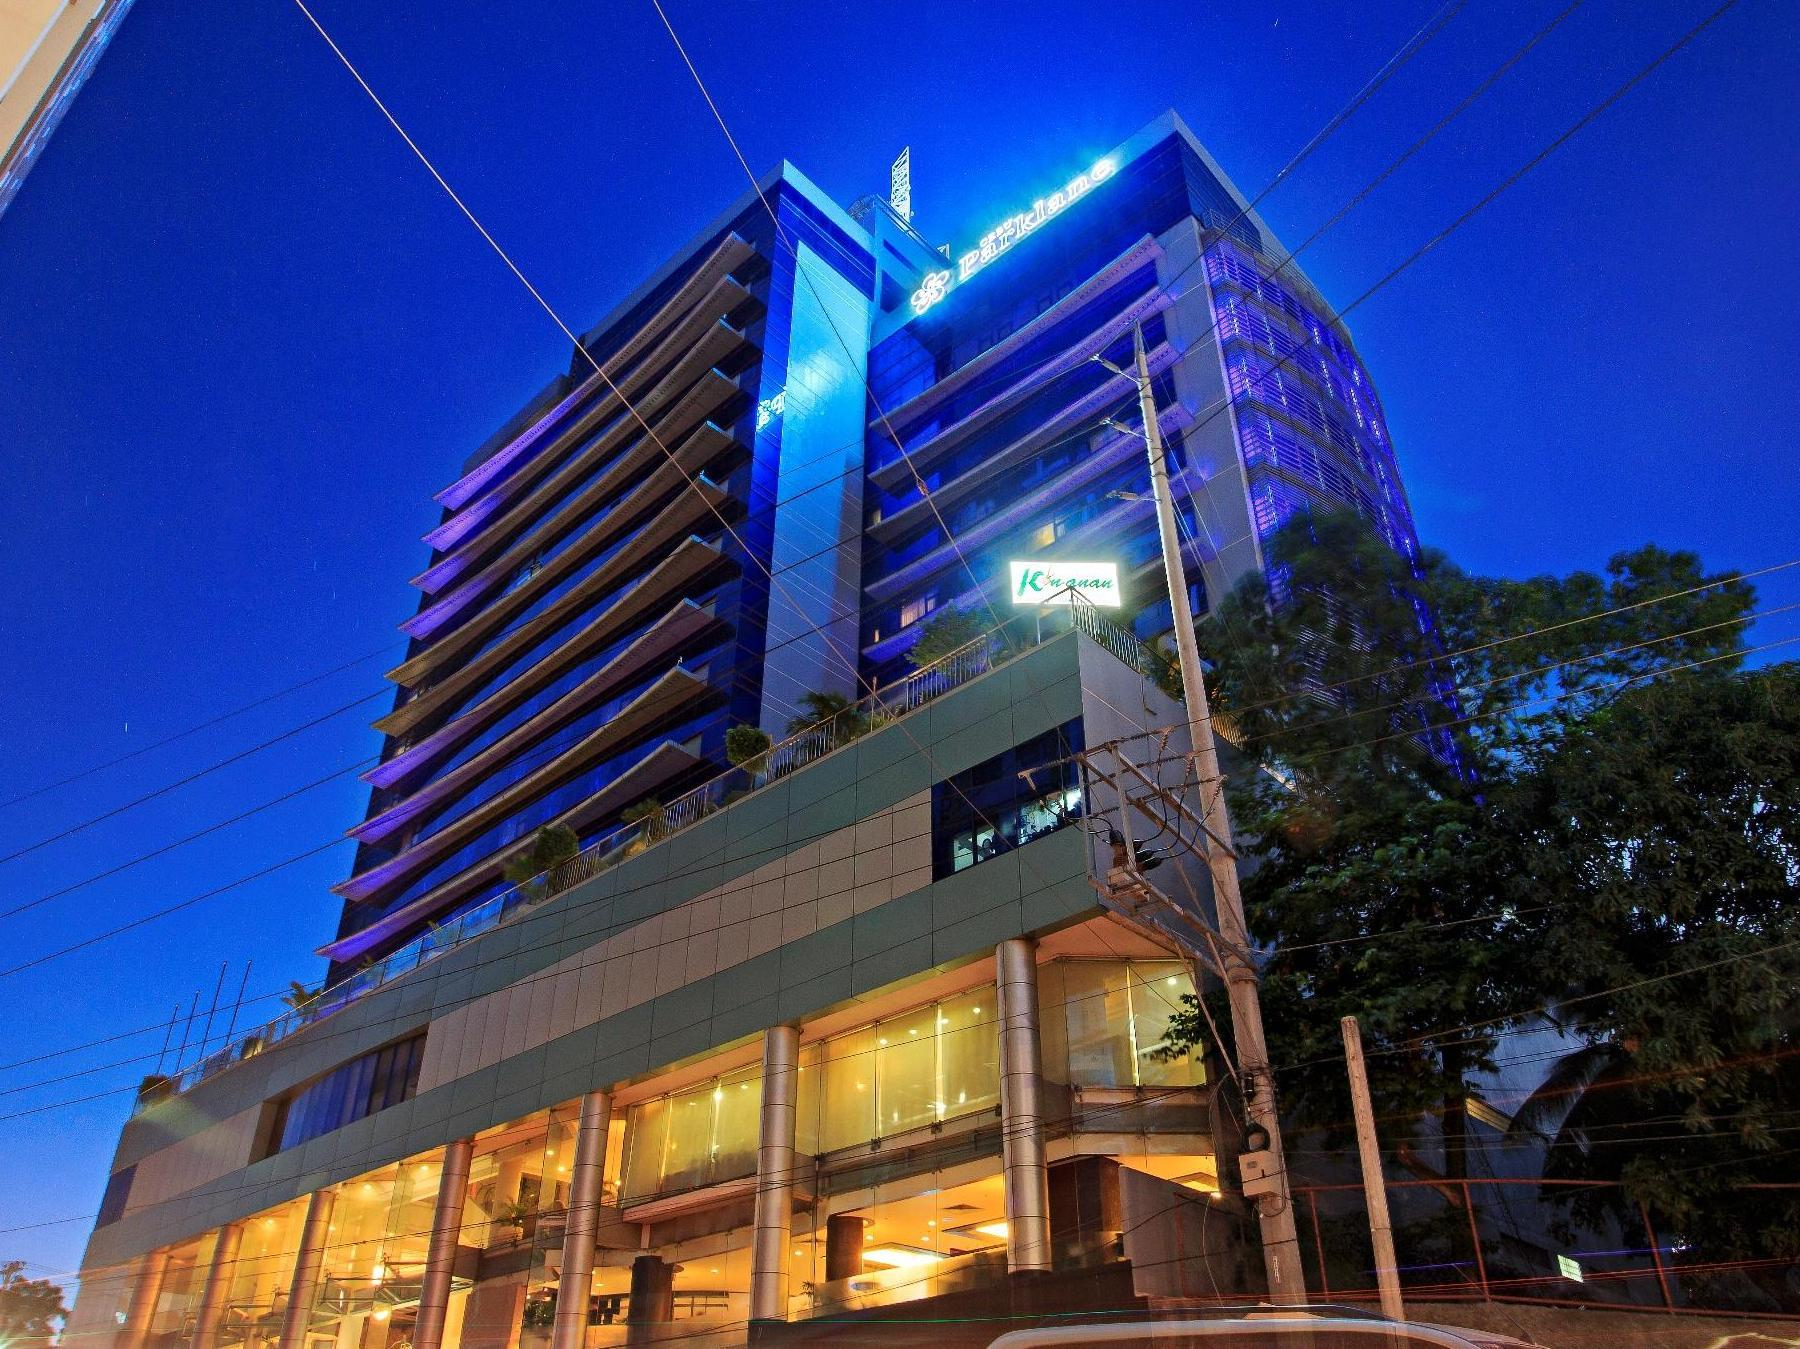 Cebu Parklane International Hotel Cebu - Tampilan Luar Hotel